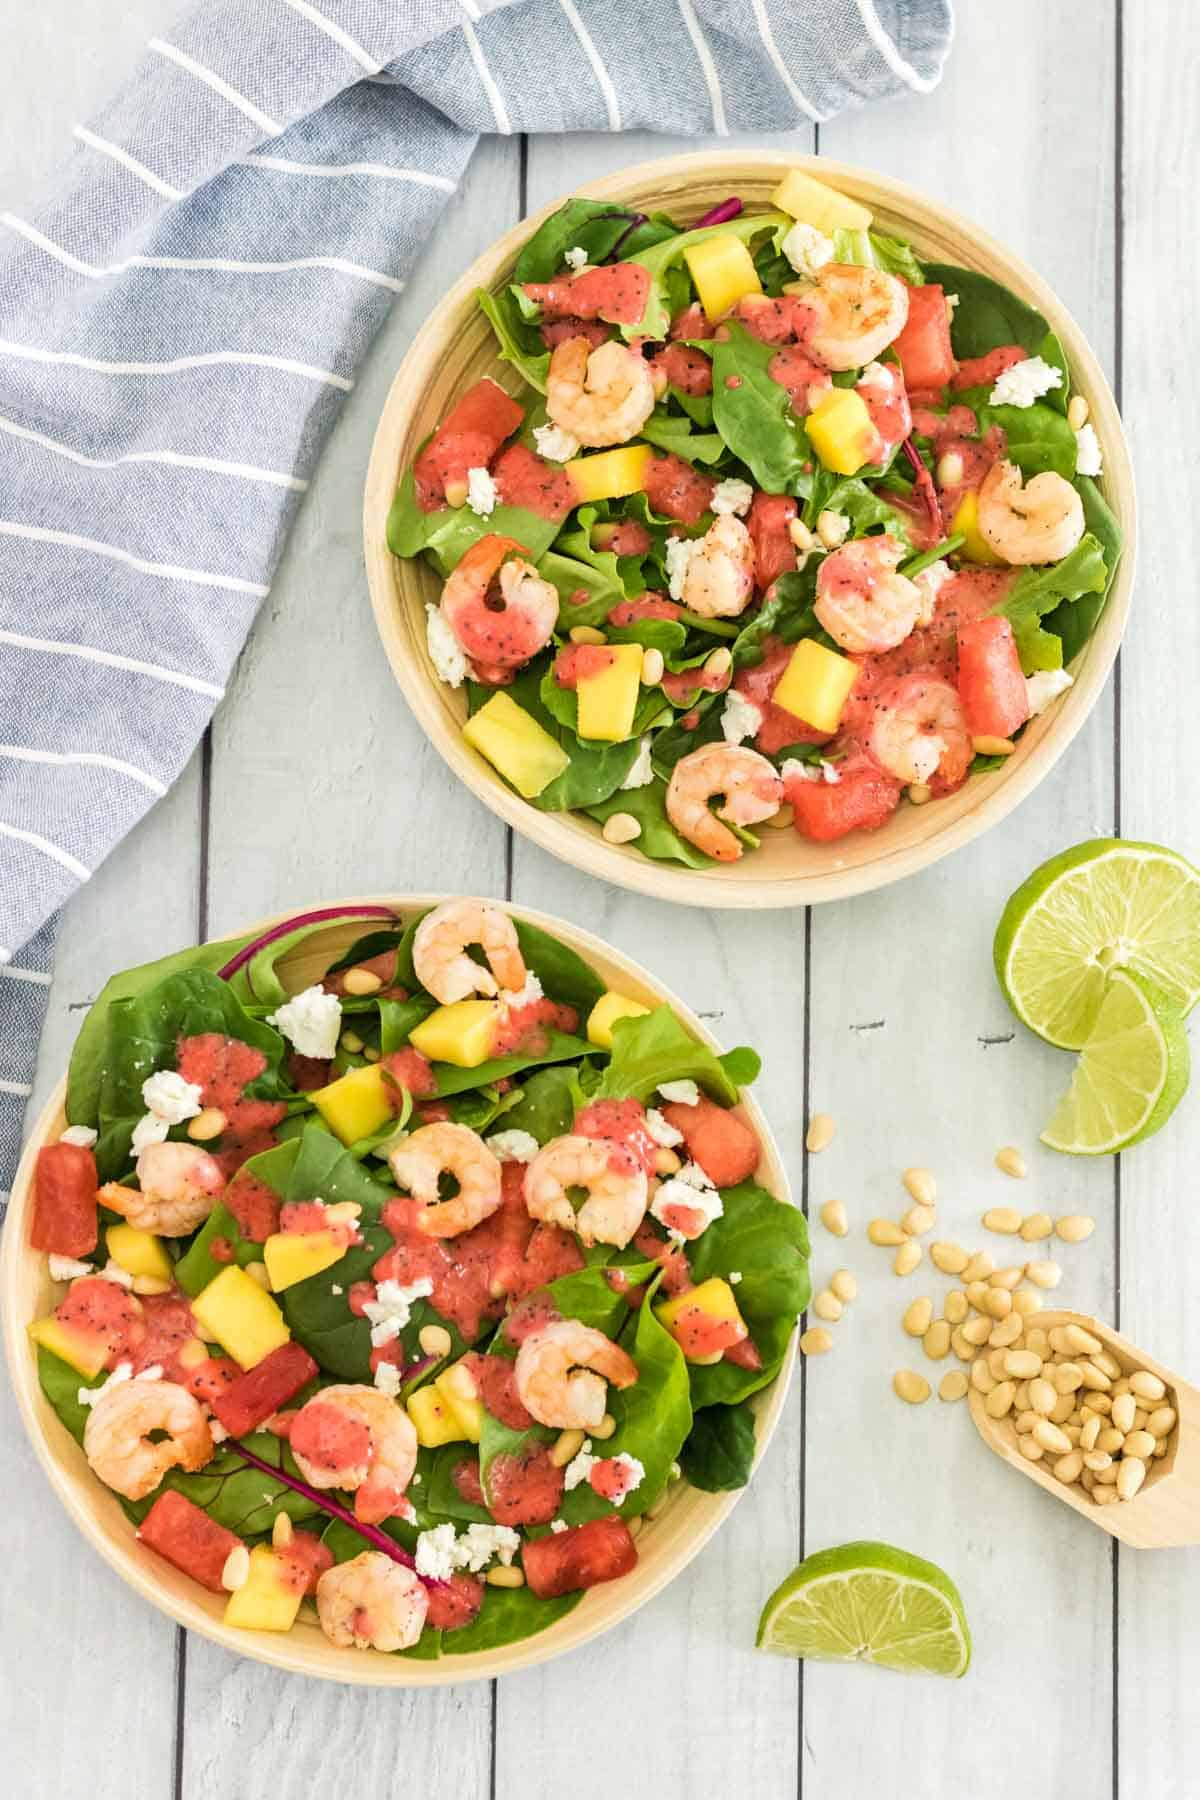 looking down on two bowls of salad with grilled shrimp and summer fruit next to a scoop of pine nuts and lemon wedges